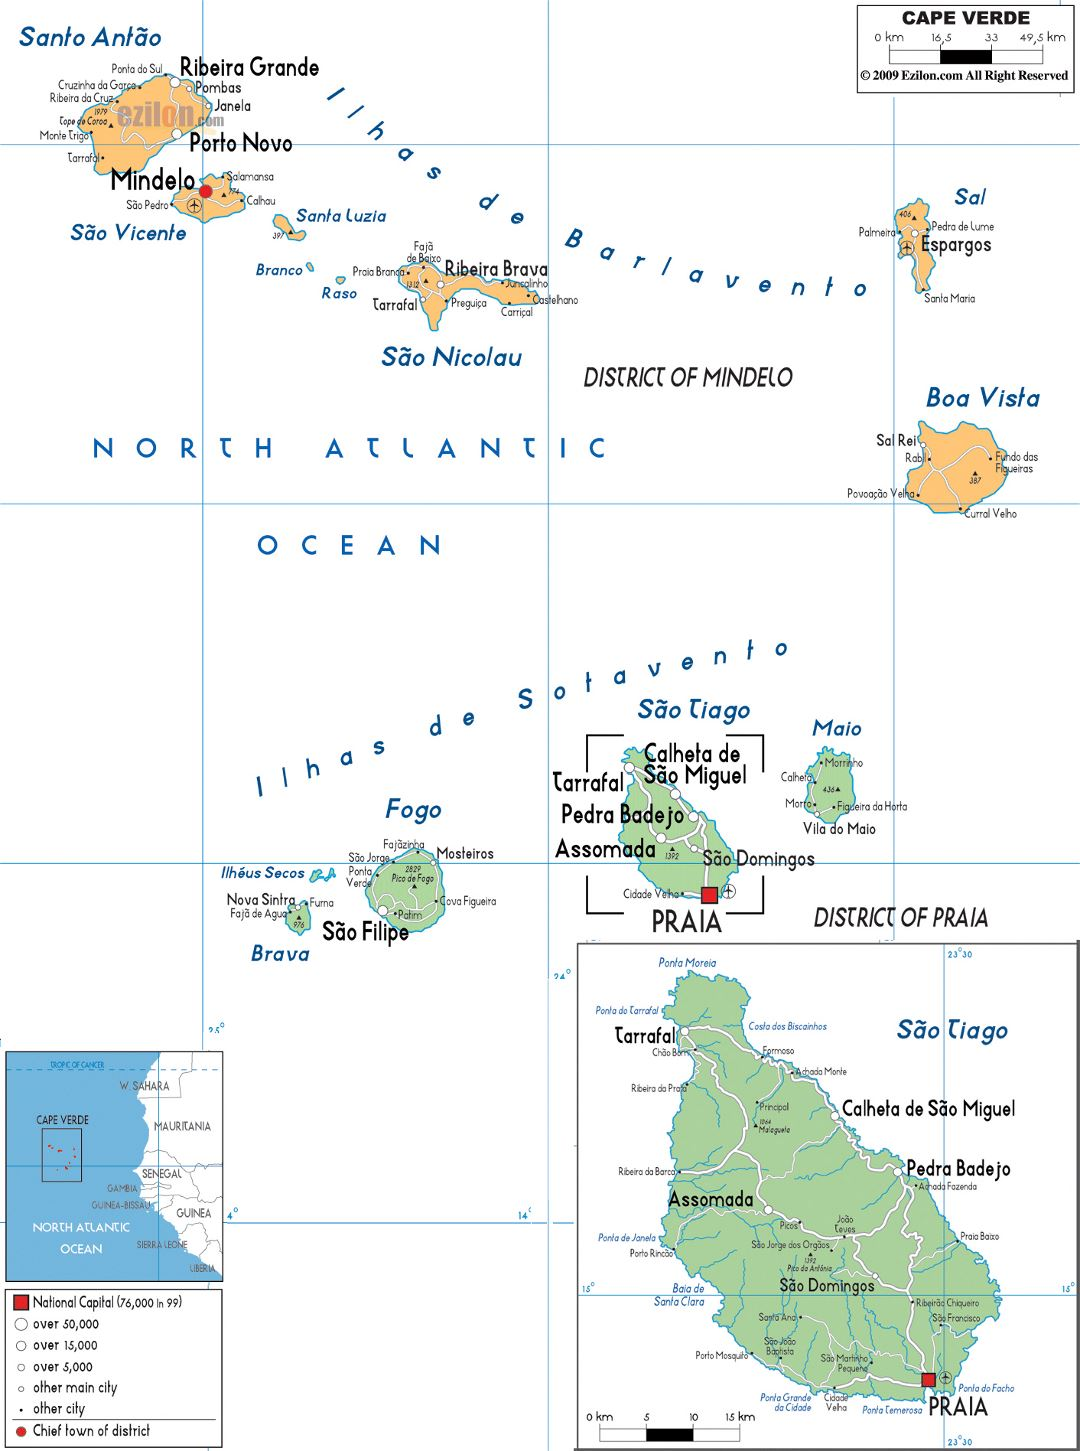 Large political and administrative map of Cape Verde with roads, cities and airports